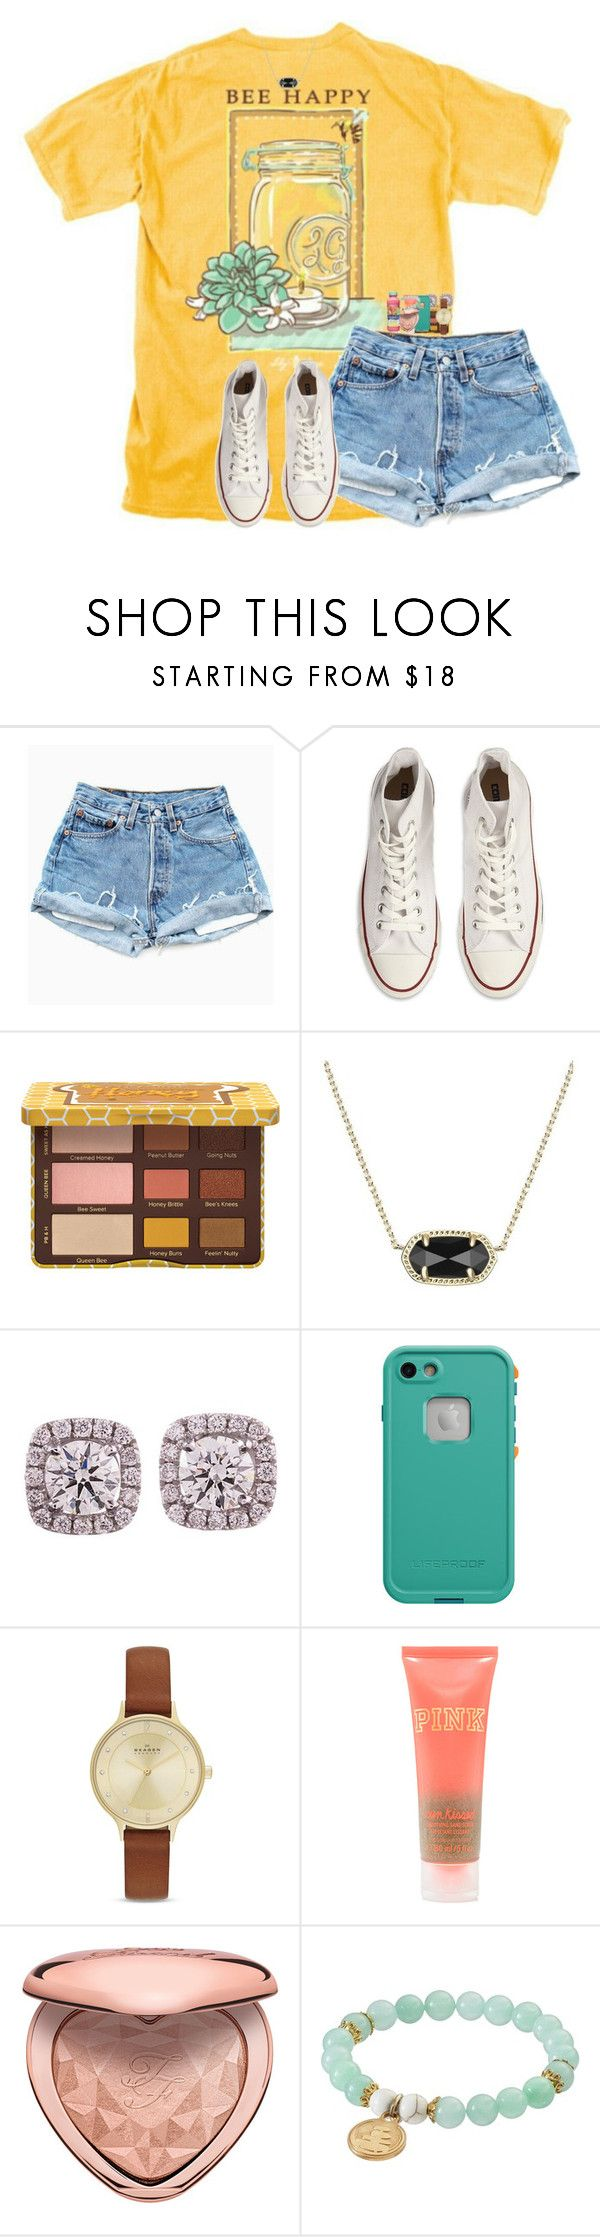 """"" by hailstails ❤ liked on Polyvore featuring Converse, Kendra Scott, LifeProof, Skagen, Wish Upon A Rock and Mangosteen"